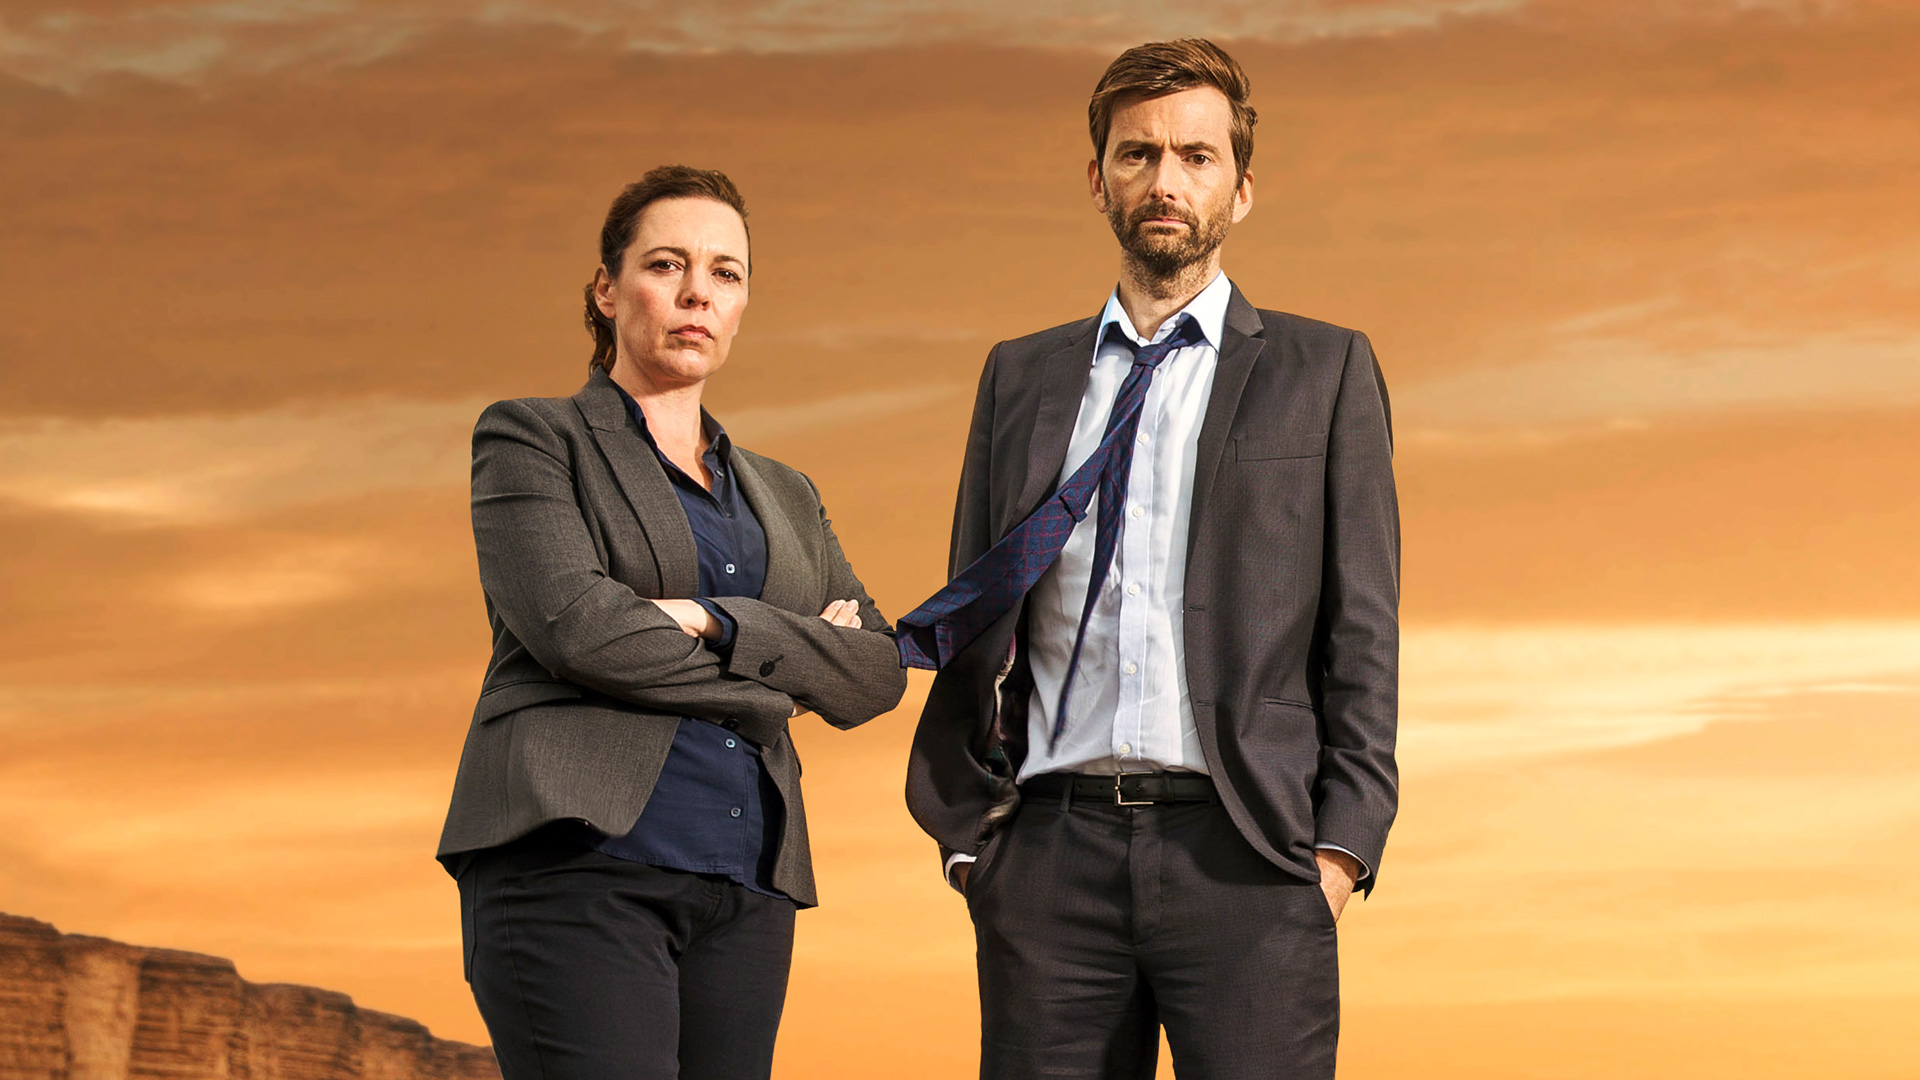 Where to Watch Broadchurch